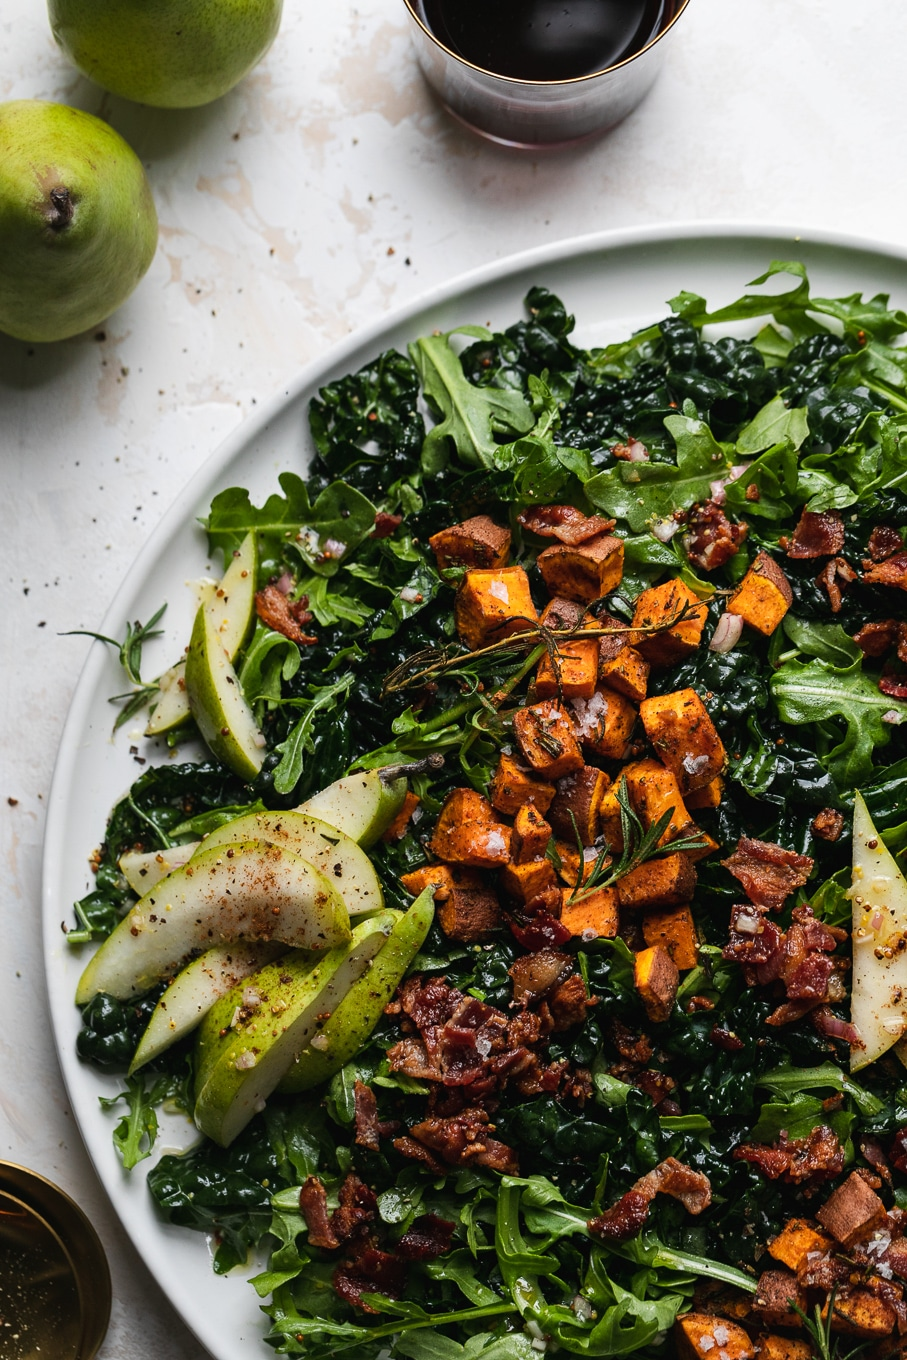 Overhead close up shot of kale salad with sweet potato, pear, and bacon